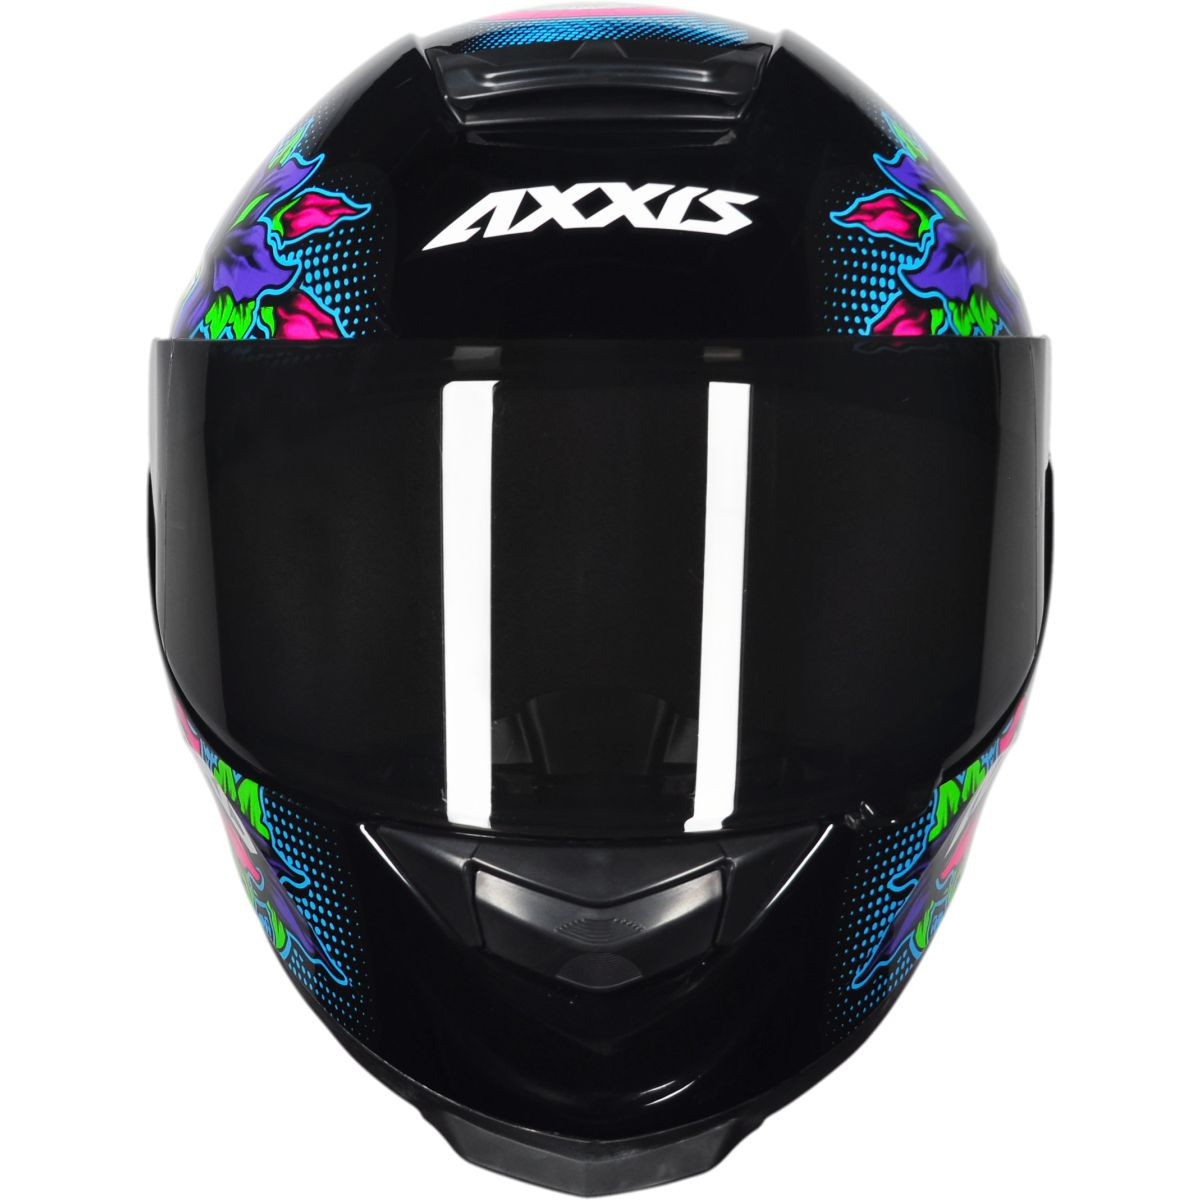 CAPACETE AXXIS EAGLE SKULL GLOSS BLACK/BLUE + VISEIRA CAMALEÃO EXTRA